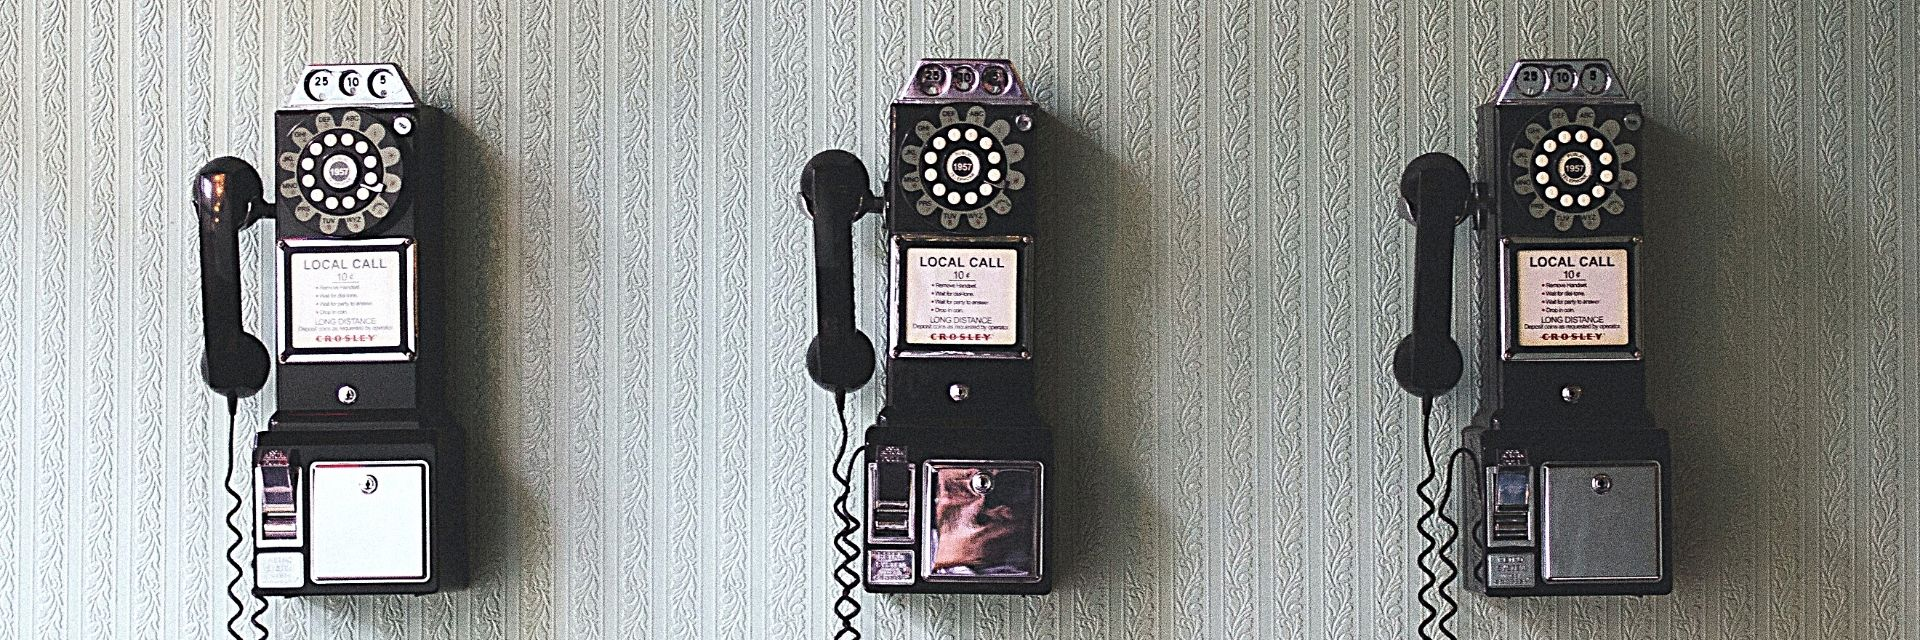 A shot of a wall with 3 old fashioned telephones in a row